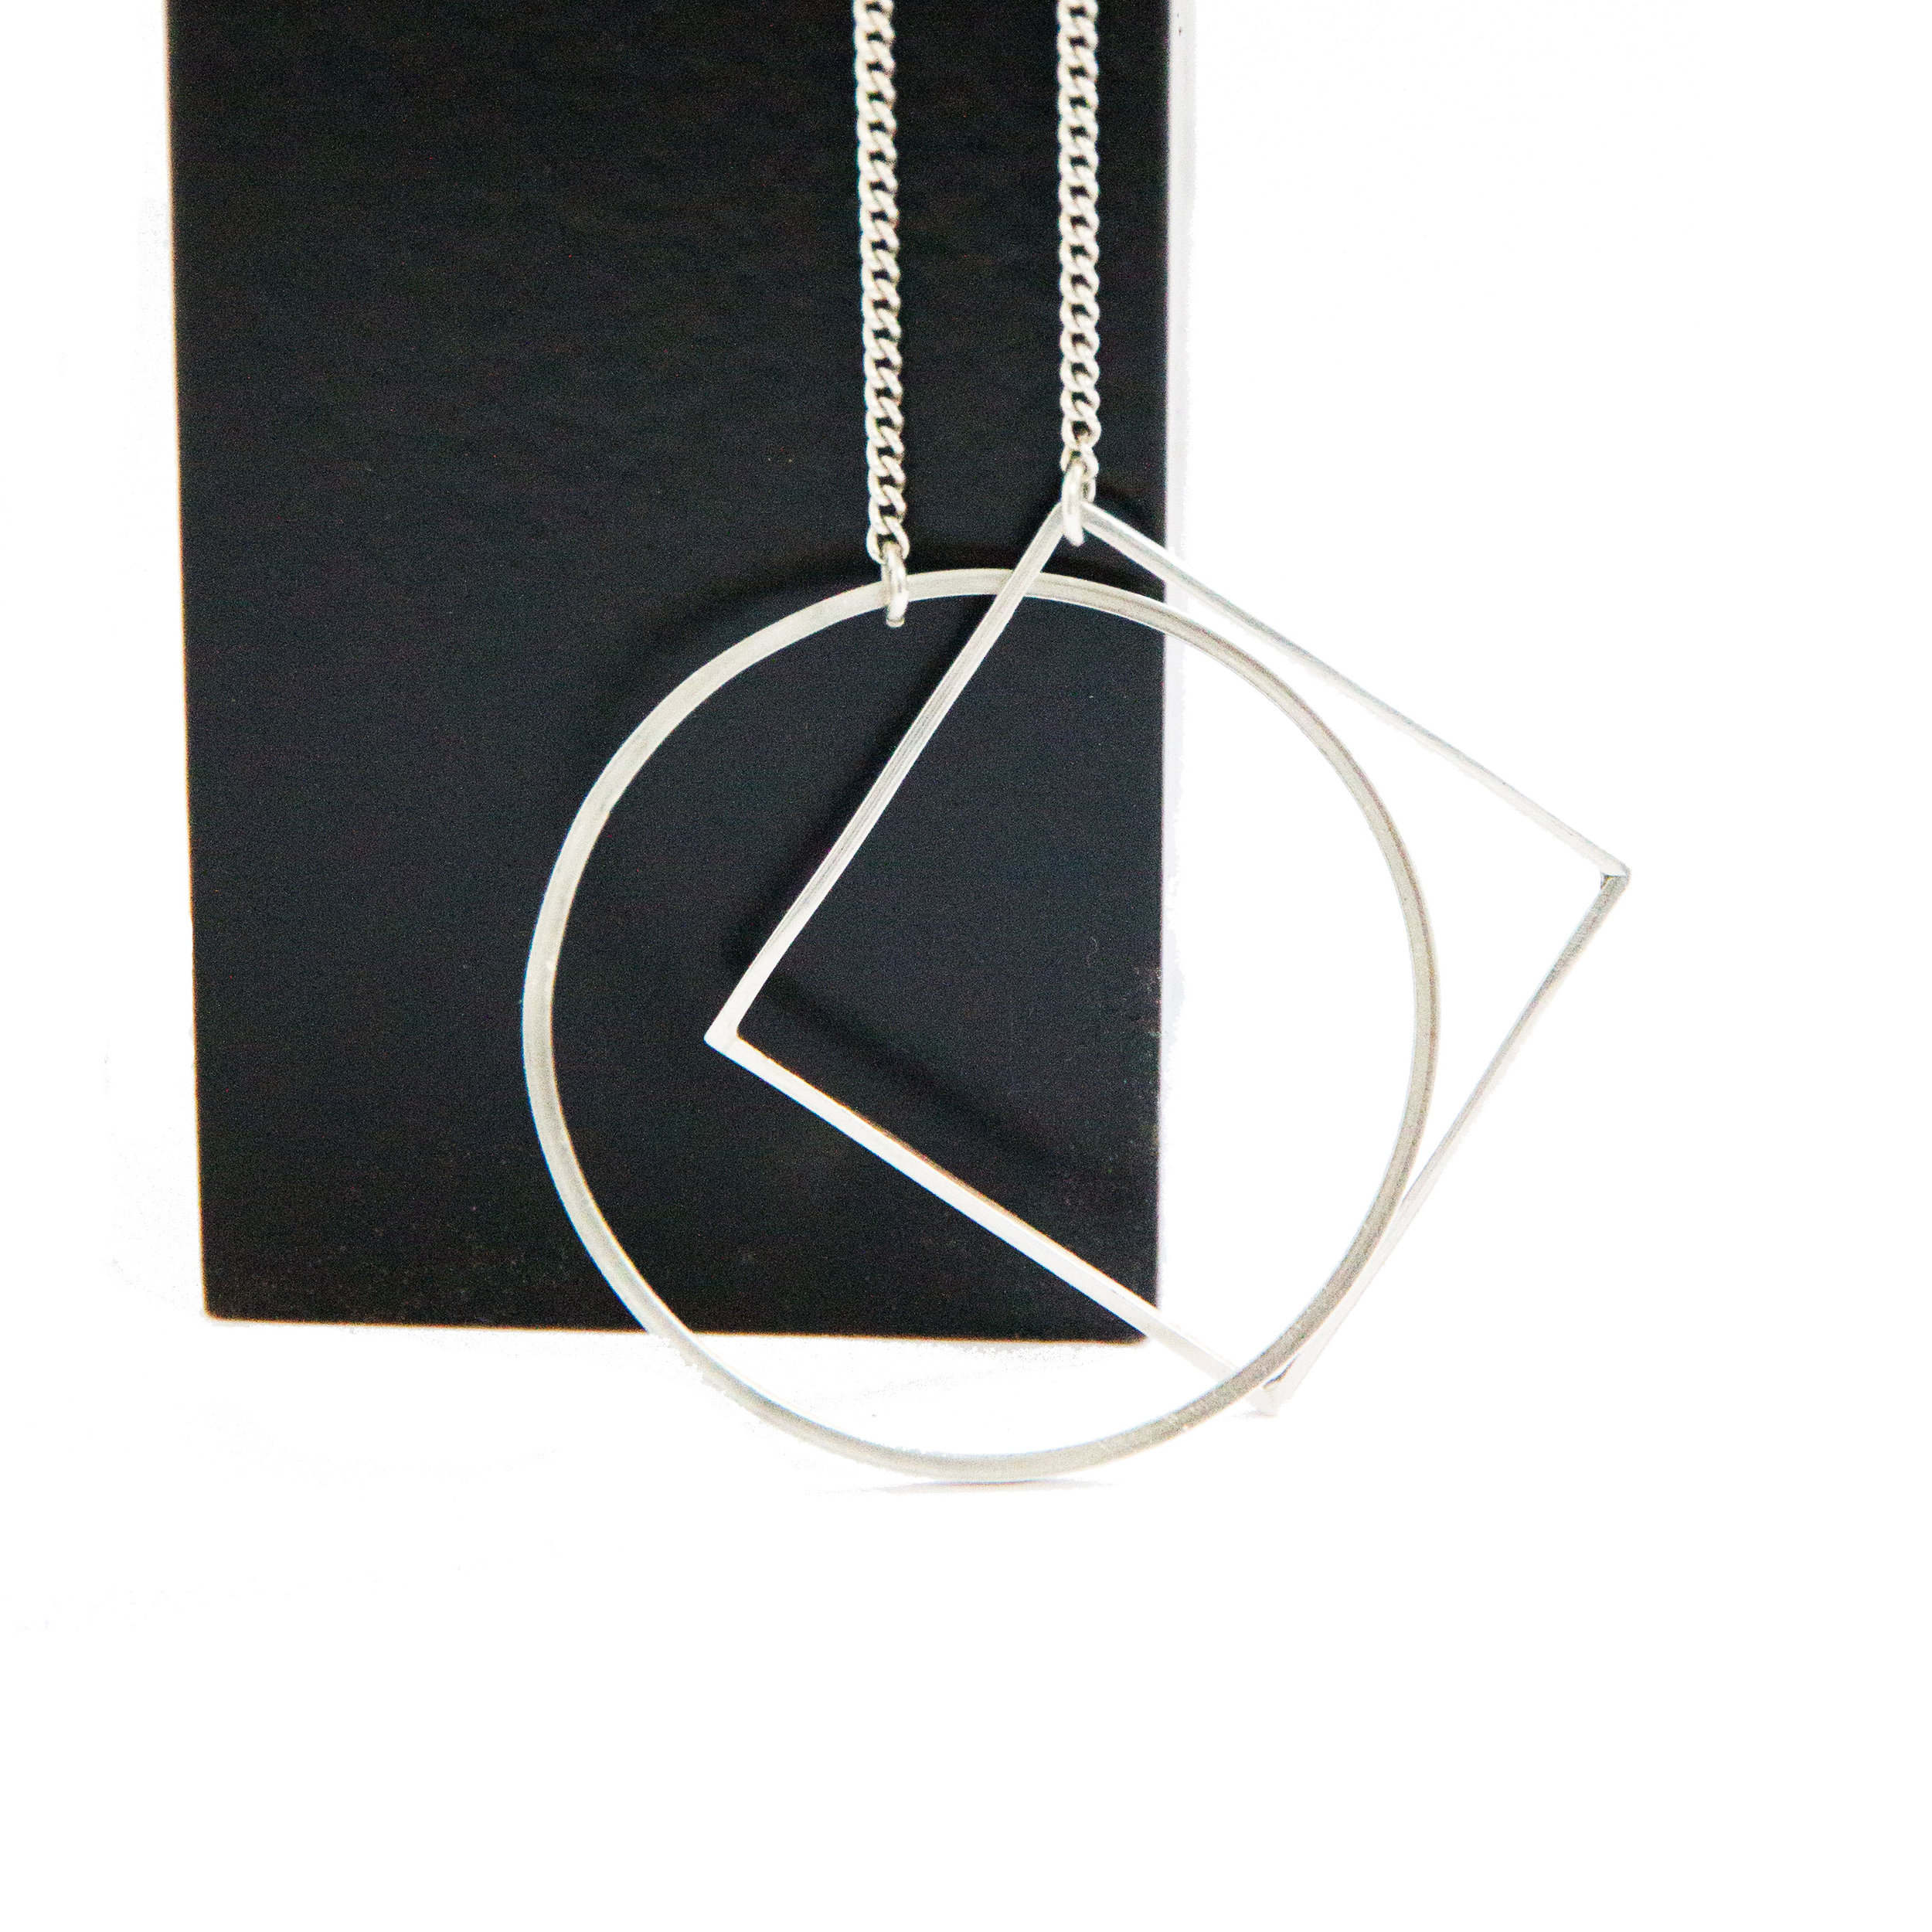 circle-square-necklace.jpg